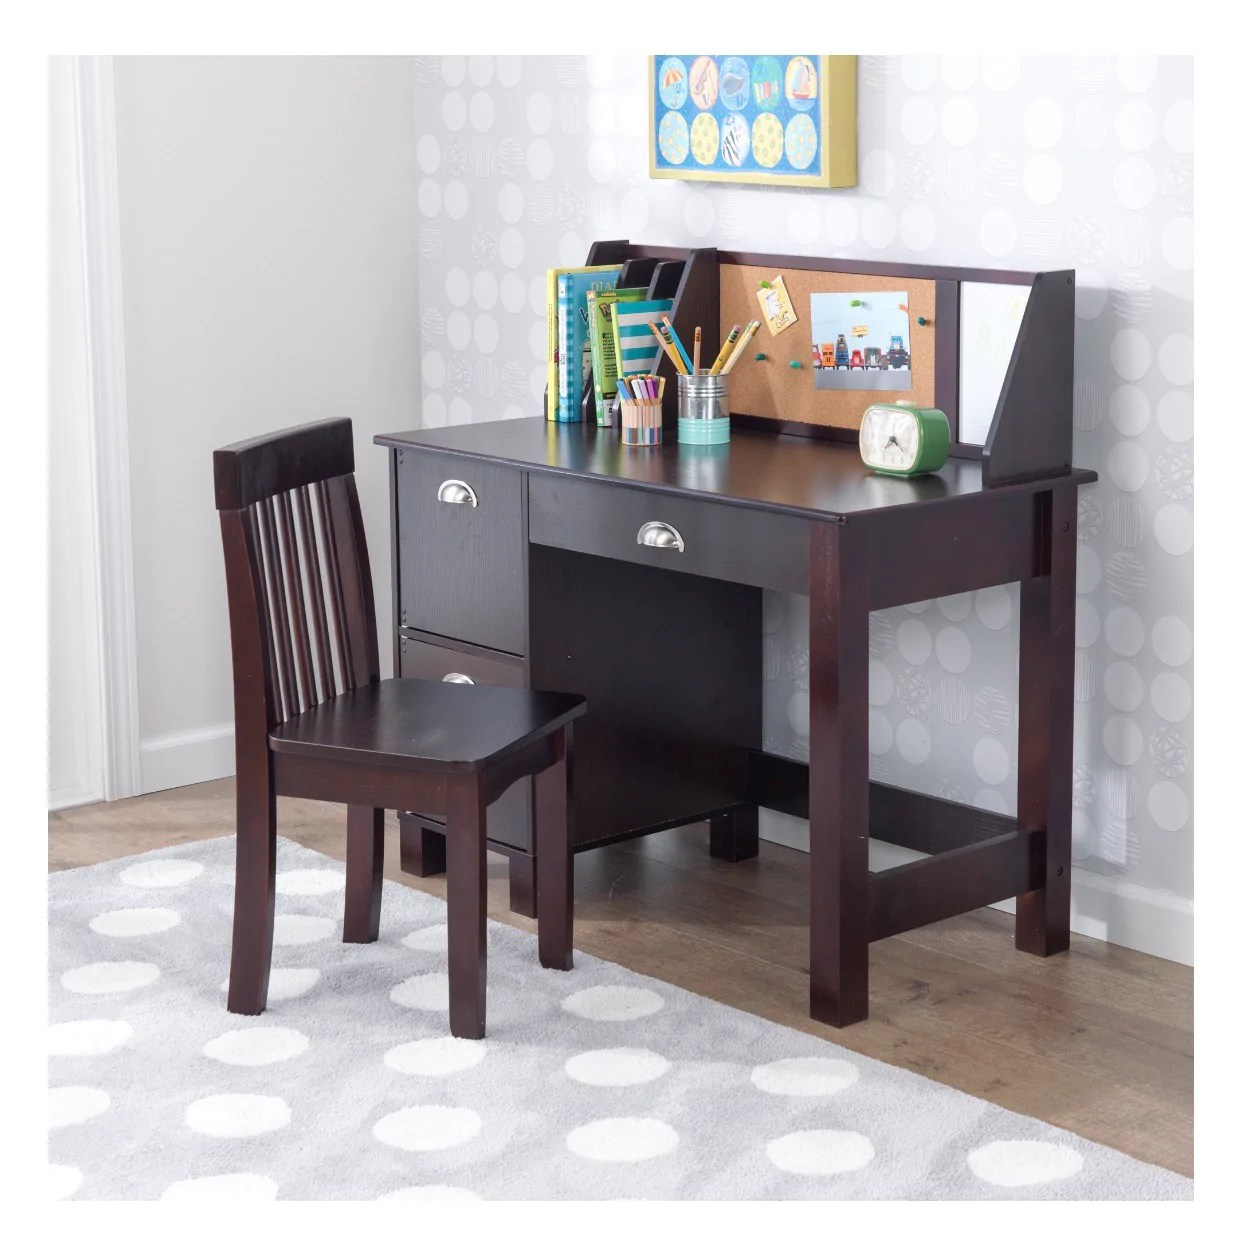 Kid Table And Chair Kid Desk Chair